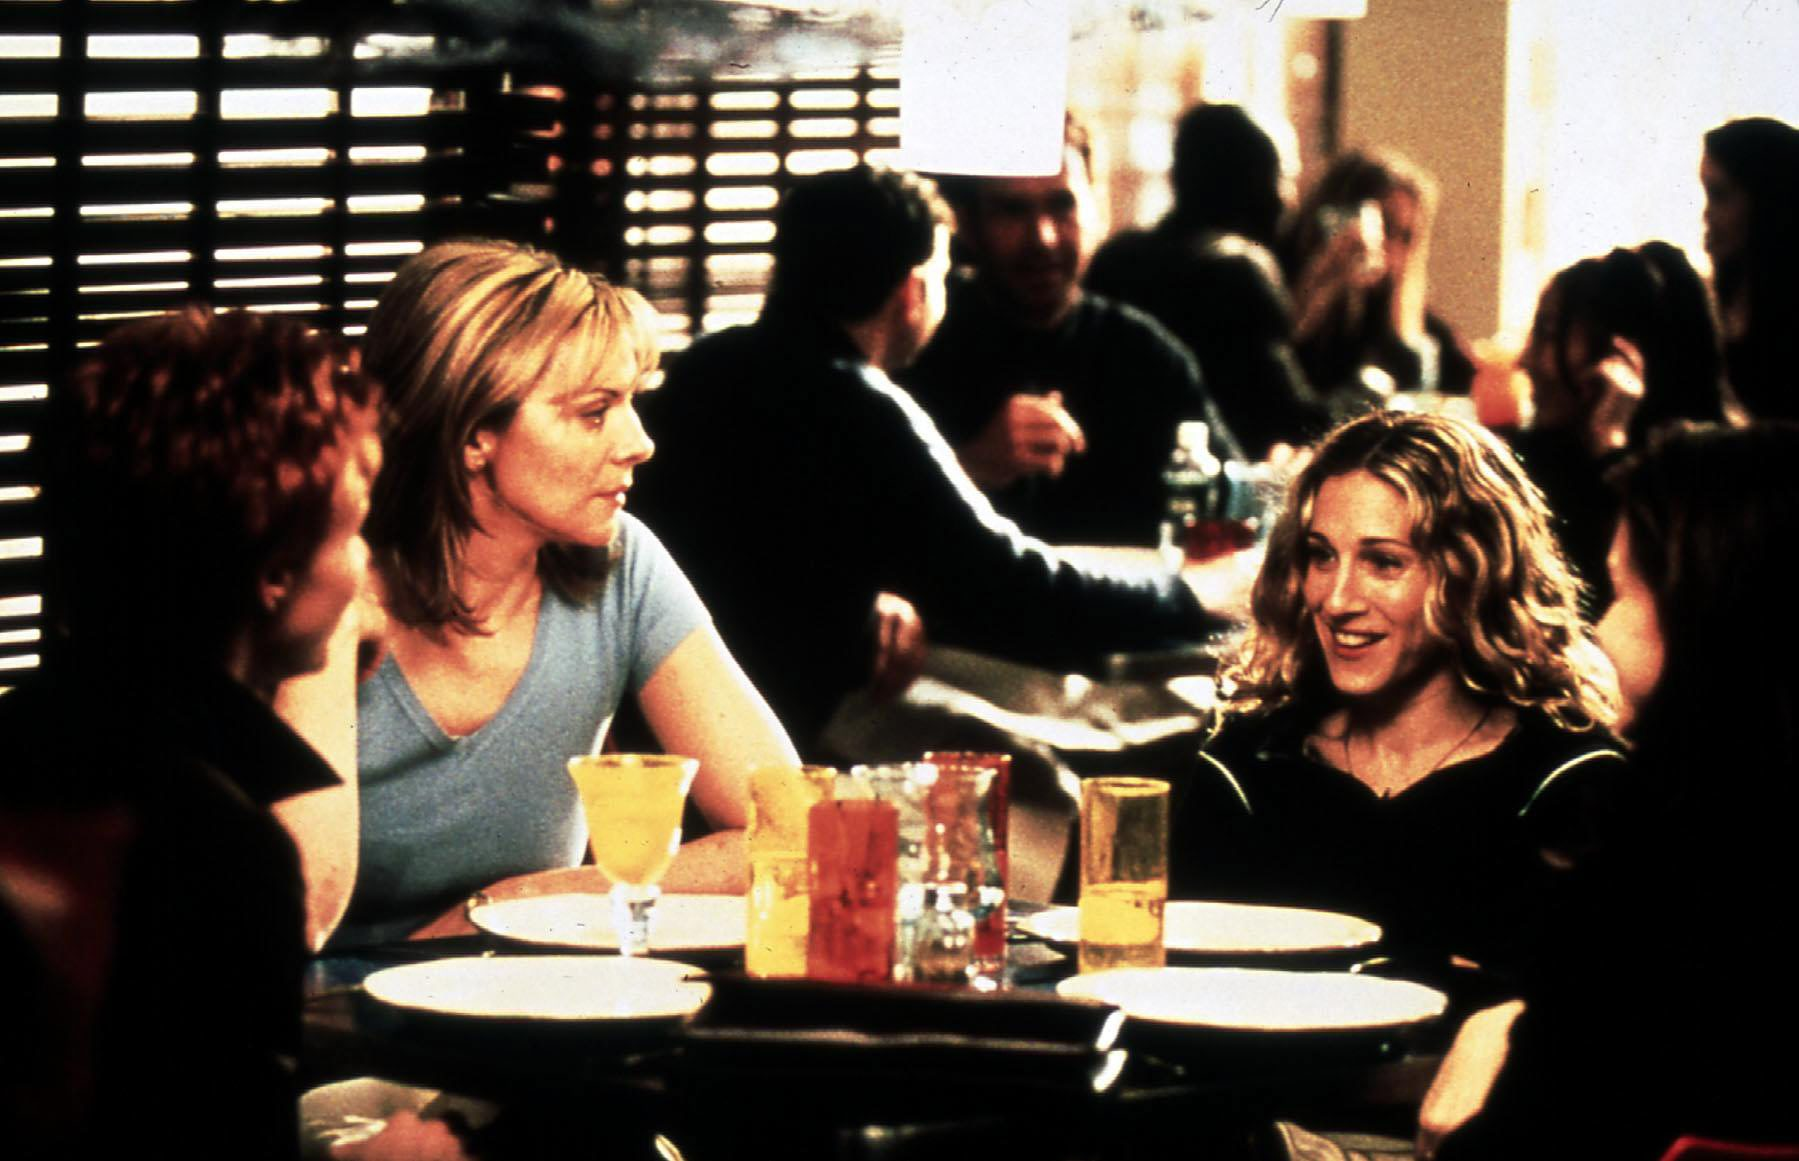 Sex And The City - 2. Season  (1999) Miranda (Cynthia Nixon), Samantha (Kim Cattrall), Carrie (Sarah Jessica Parker), Charlot